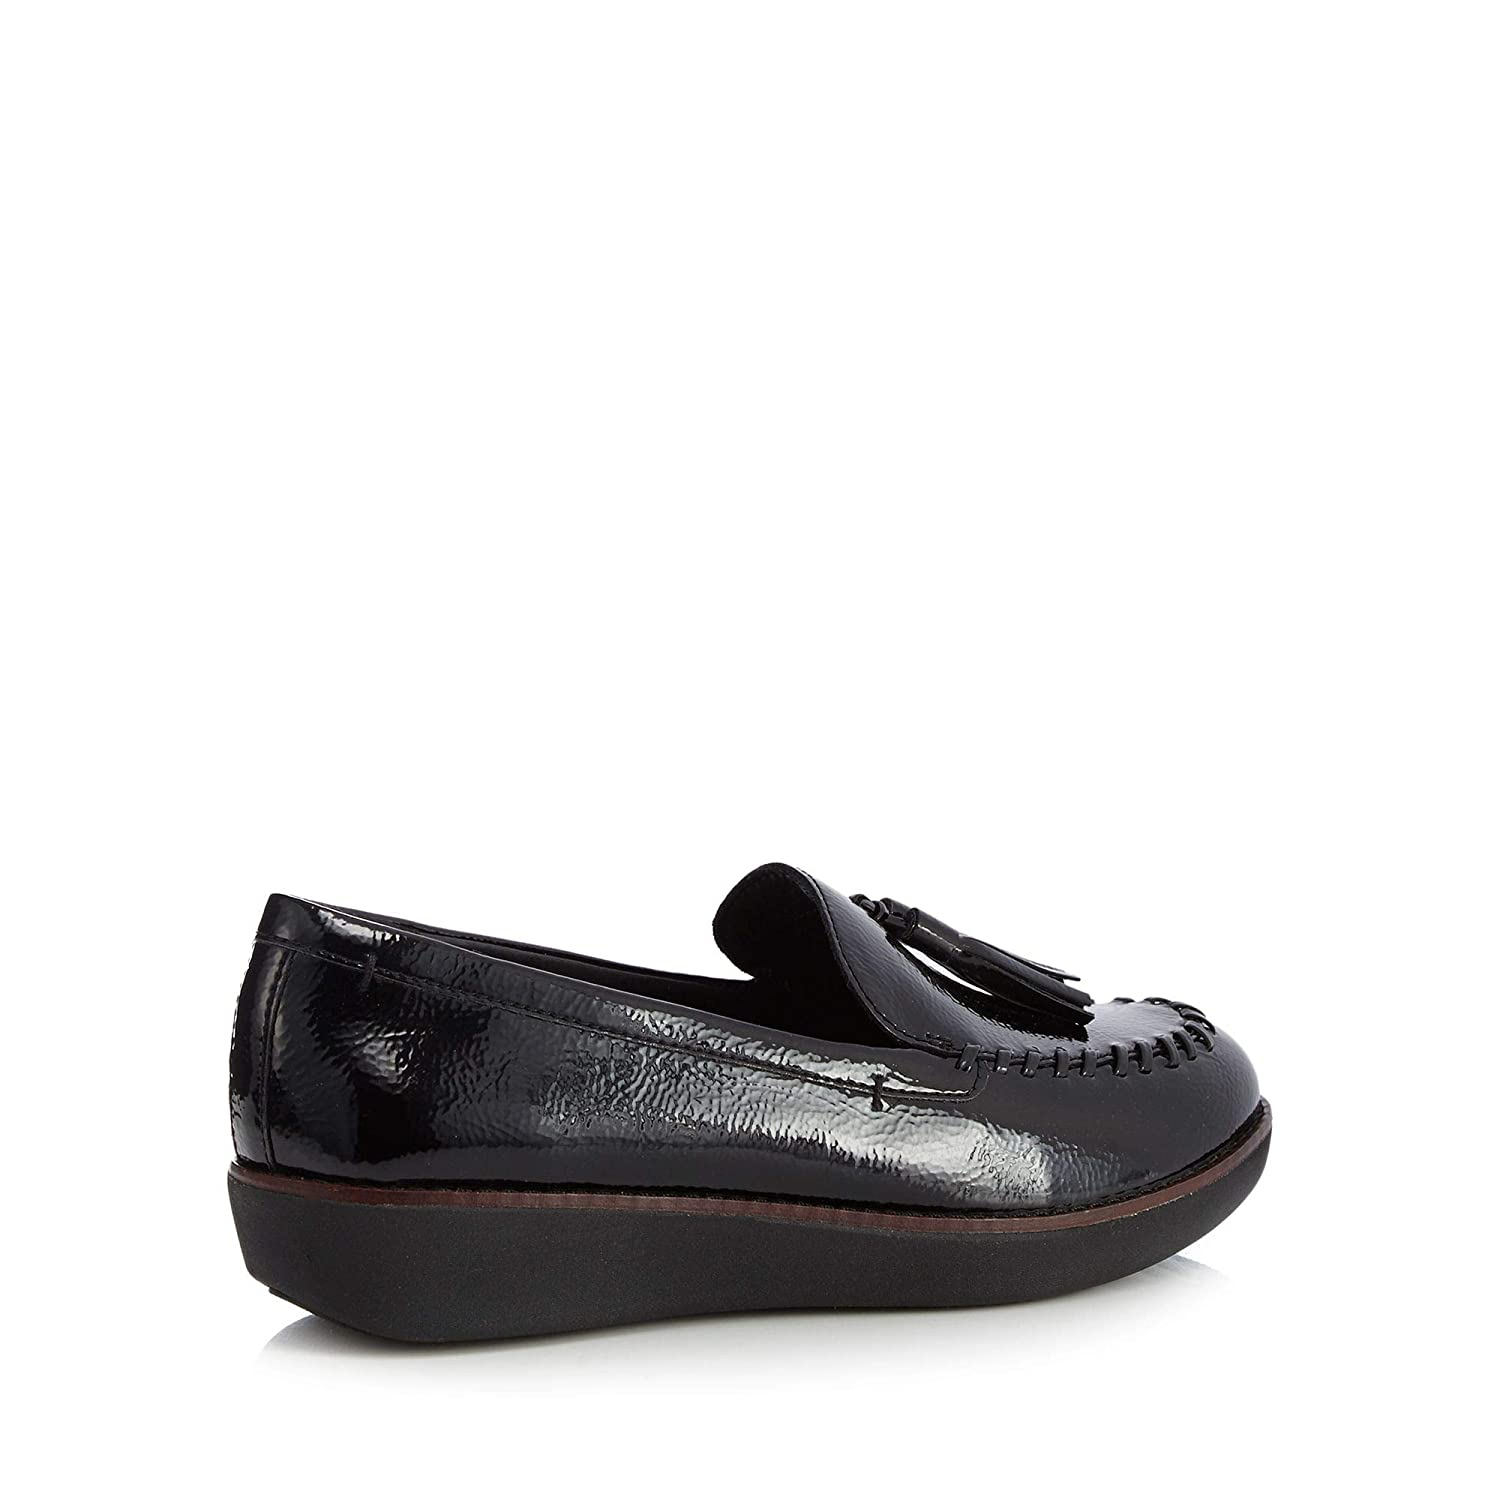 24534775a Fitflop Womens Black Patent  Paige  Loafers 5  Amazon.co.uk  Shoes   Bags